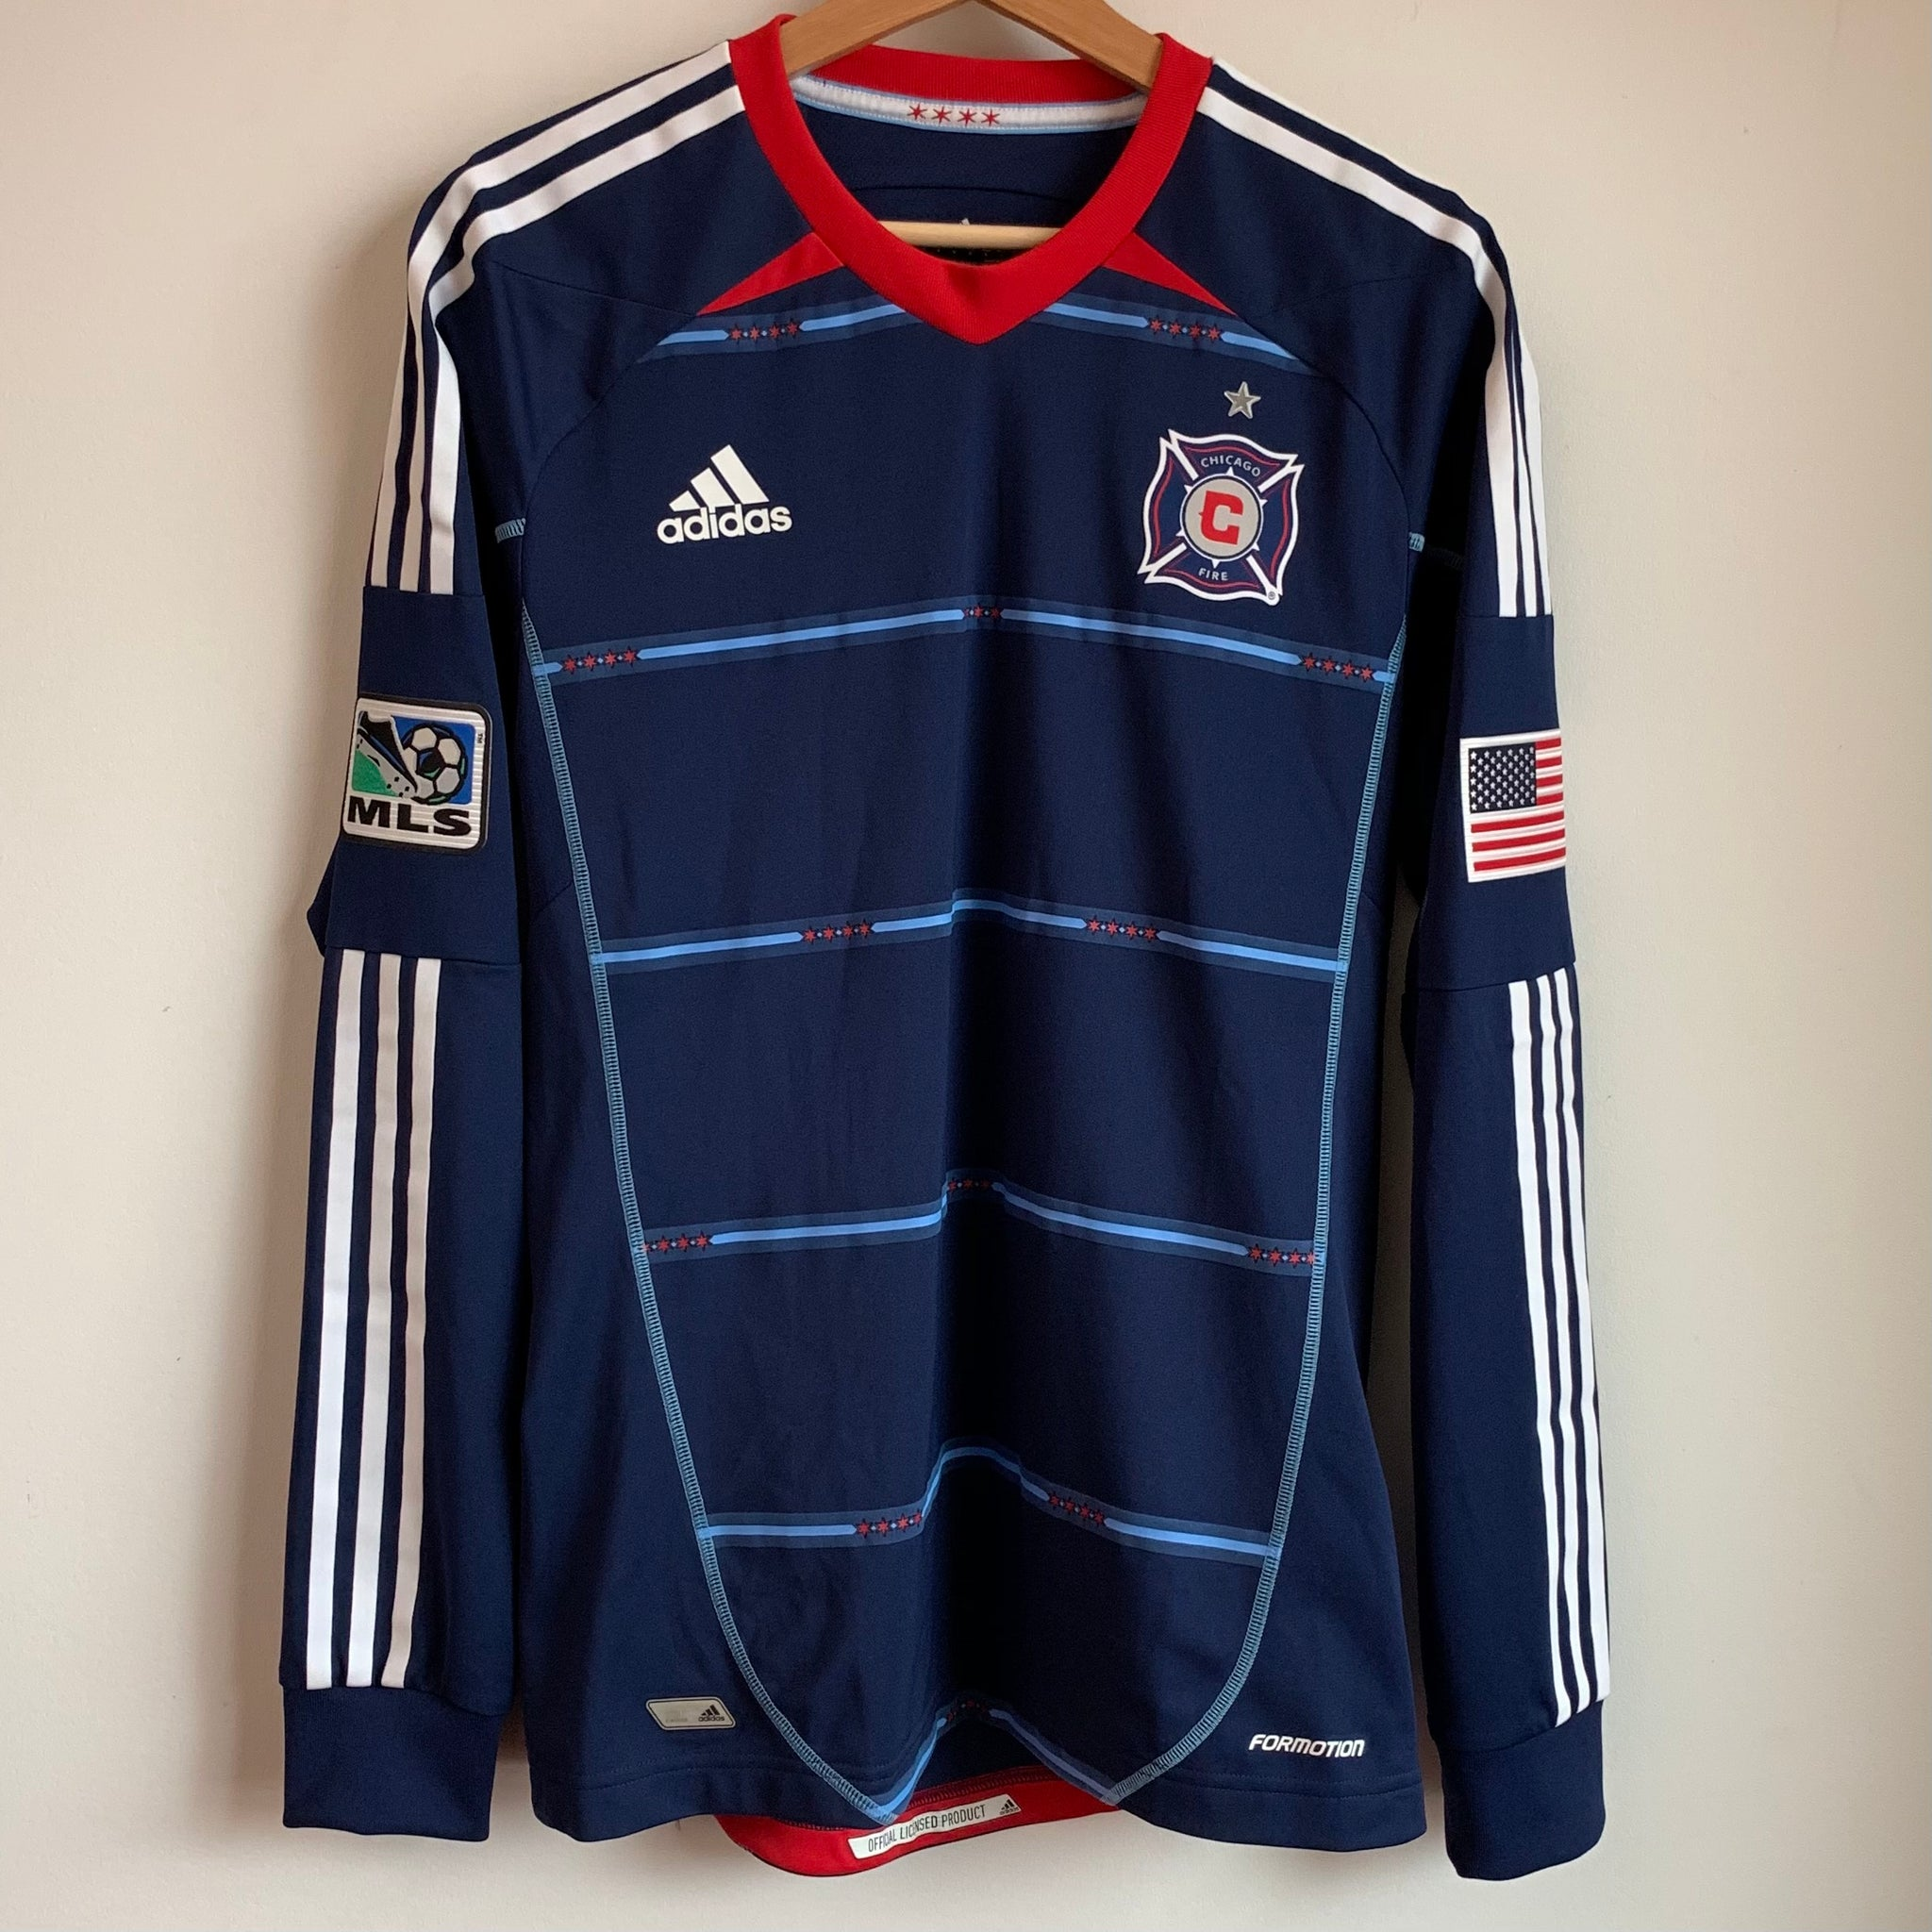 Adidas Chicago Fire Mls Soccer Jersey Laundry